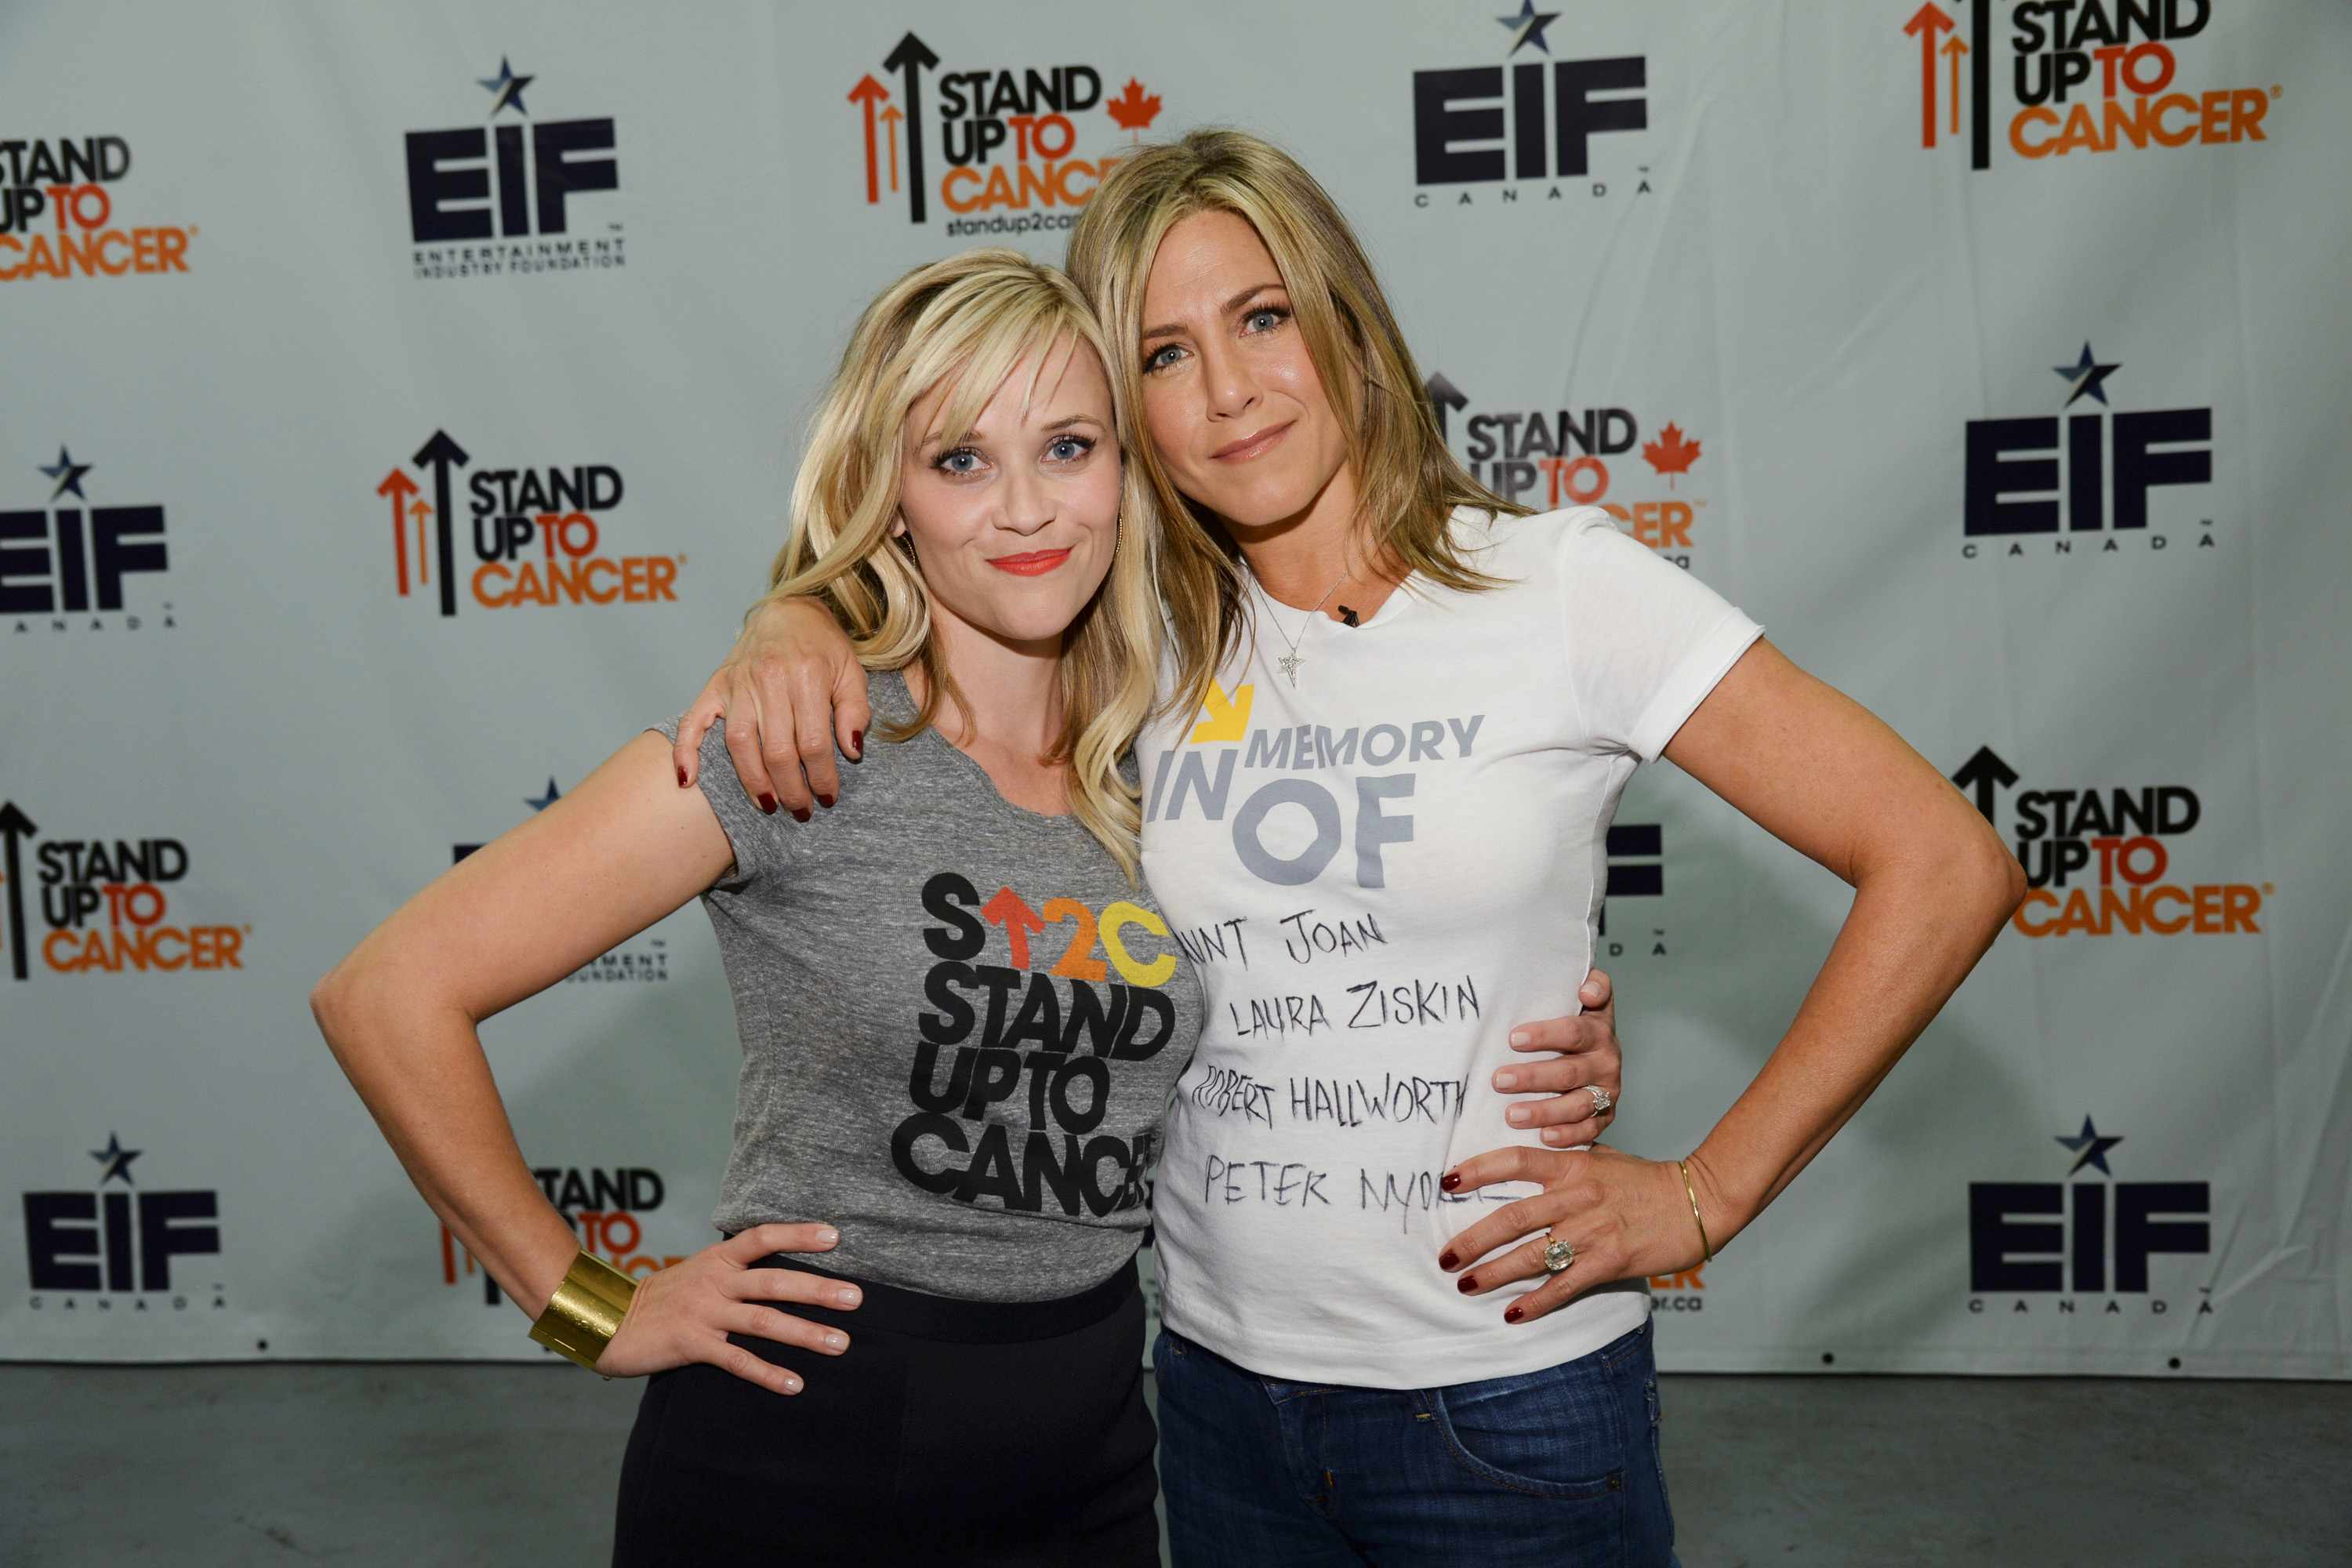 HOLLYWOOD, CA - SEPTEMBER 05:  REESE WITHERSPOON, JENNIFER ANISTON attend Stand Up To Cancer (SU2C), a program of the Entertainment Industry Foundation (EIF), staging its fourth biennial fundraising telecast at the at the Dolby Theatre on Friday September 5, 2014 (8:00-9:00 p.m., ET/PT) in Hollywood California. (Photo by Kevin Mazur/American Broadcasting Companies Inc via WireImage, BA)